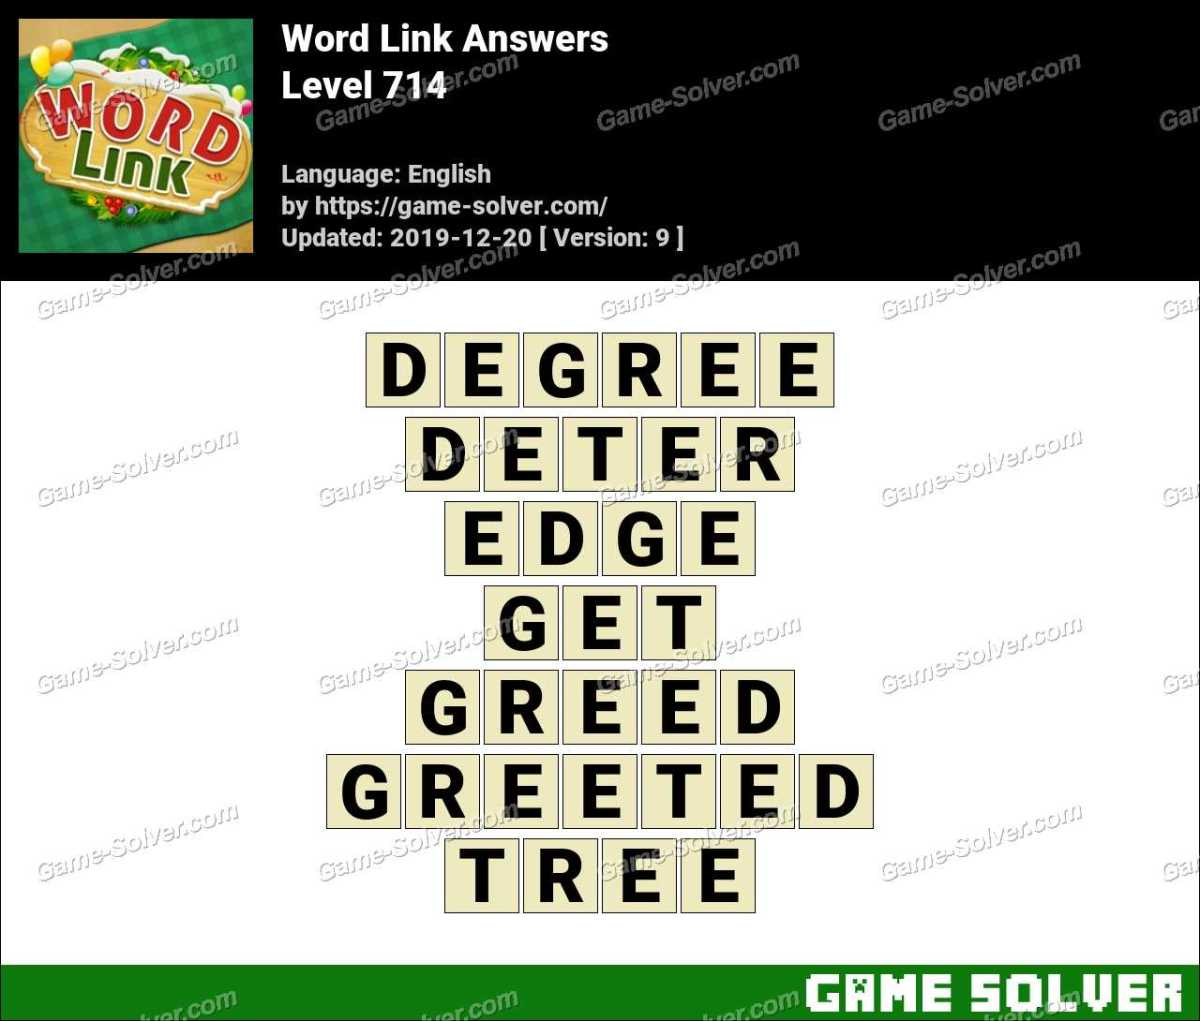 Word Link Level 714 Answers